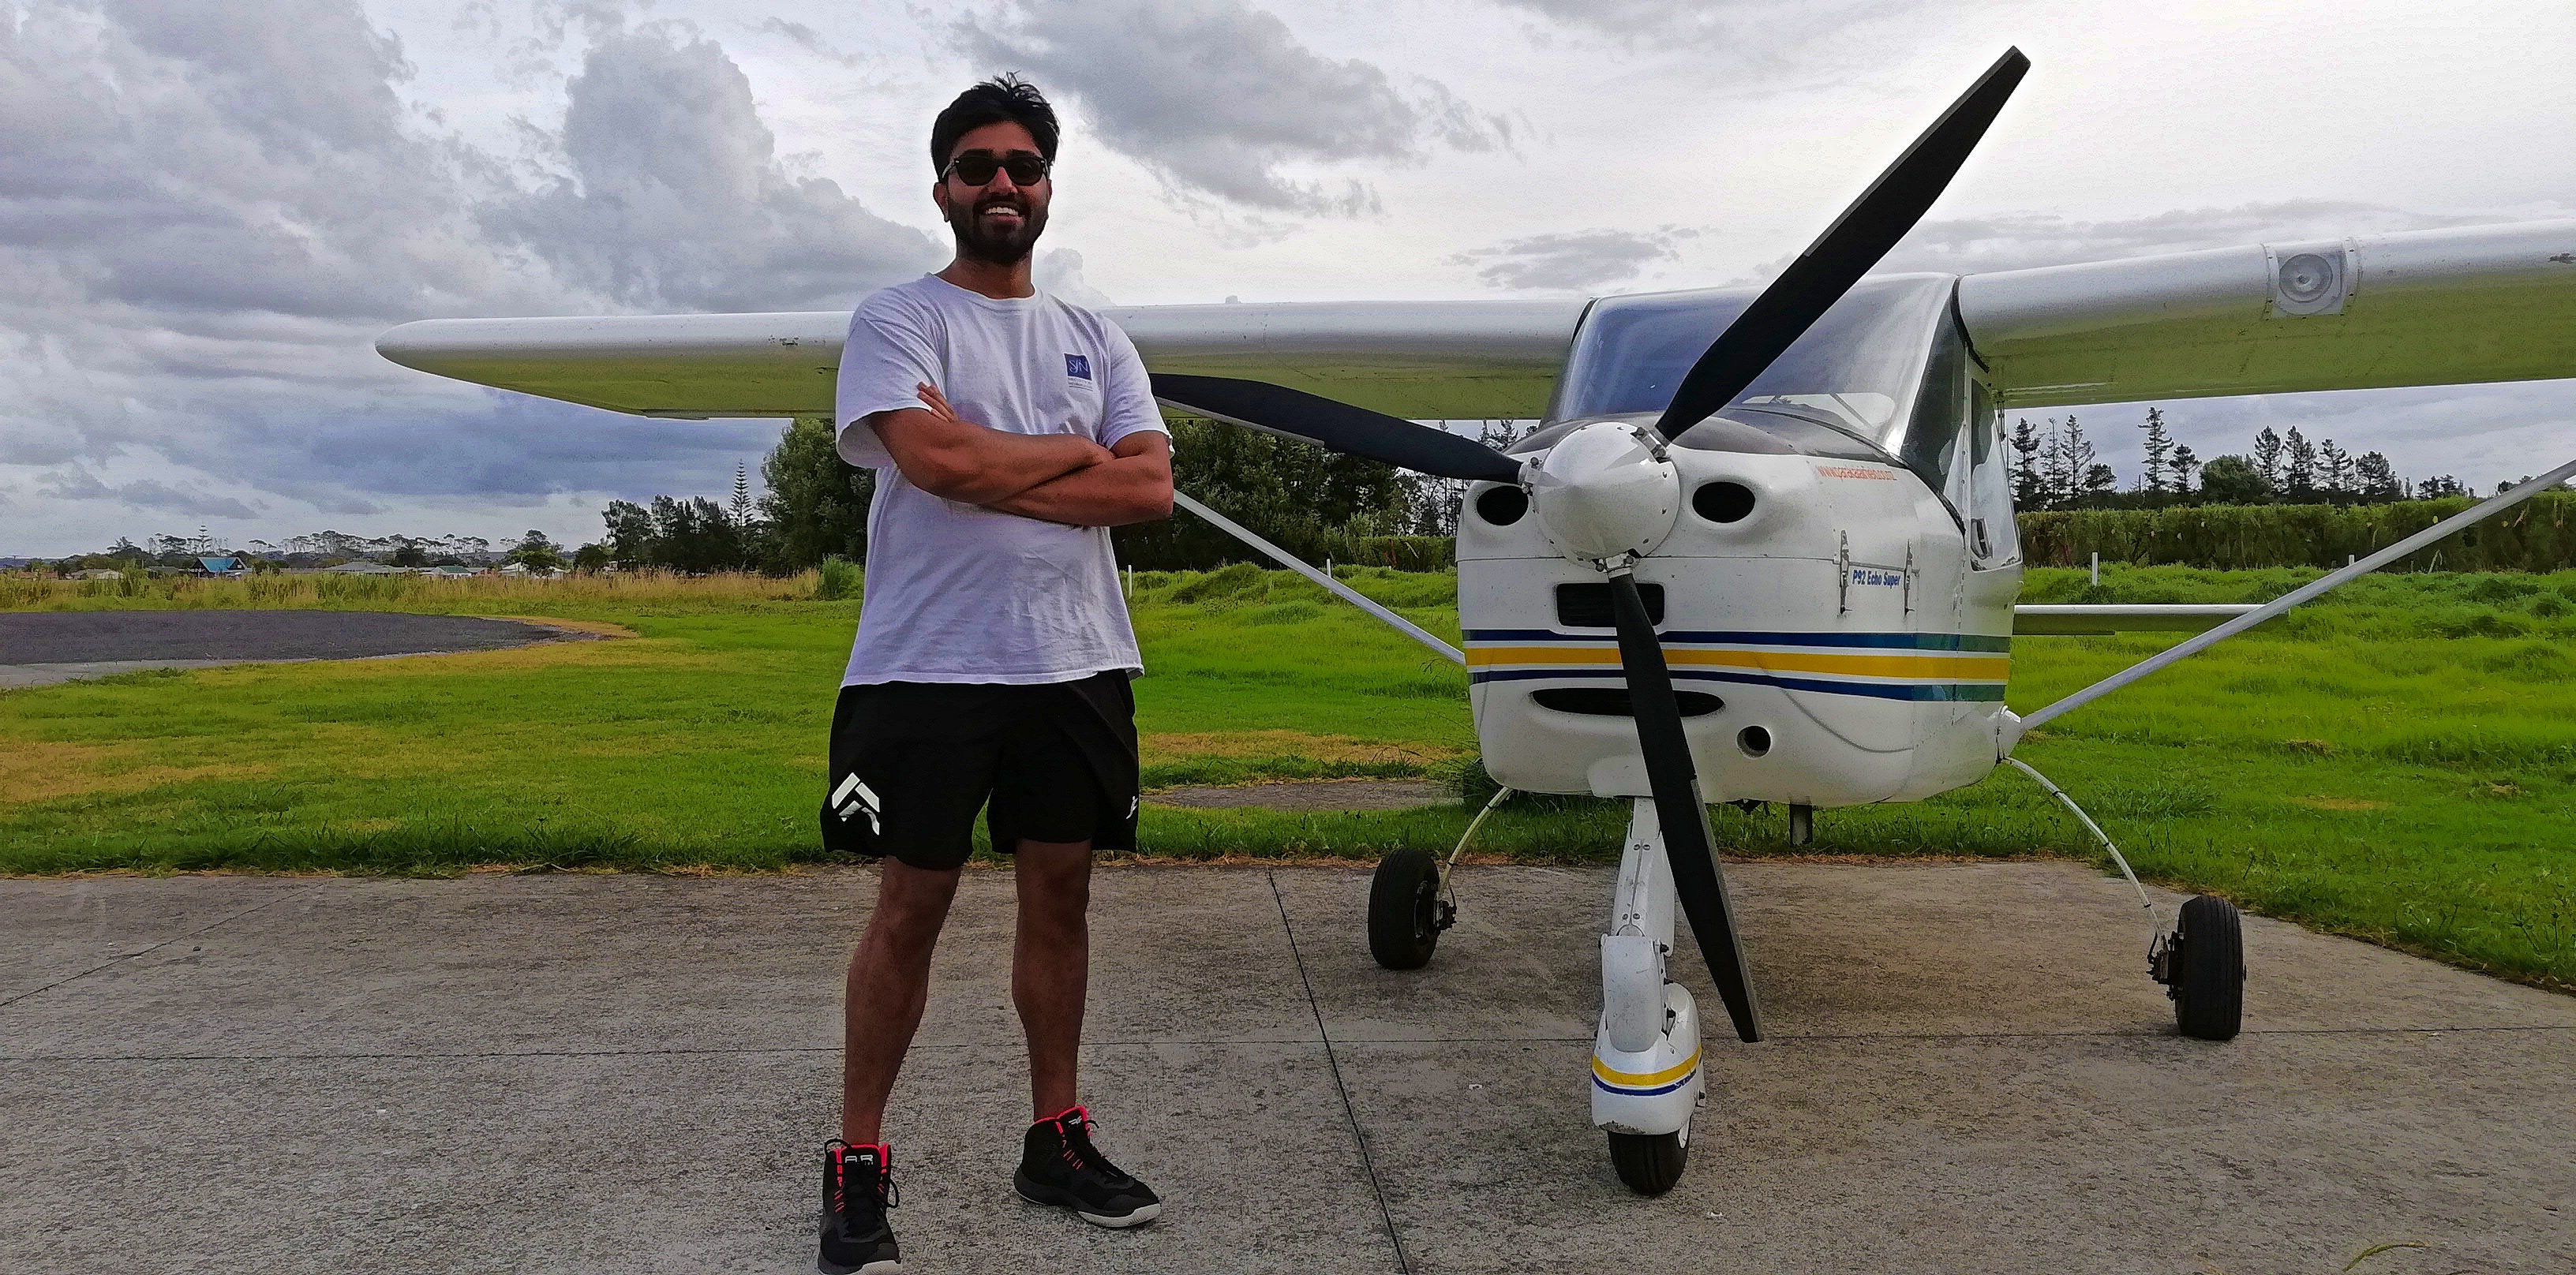 Rishi, after his trial flight